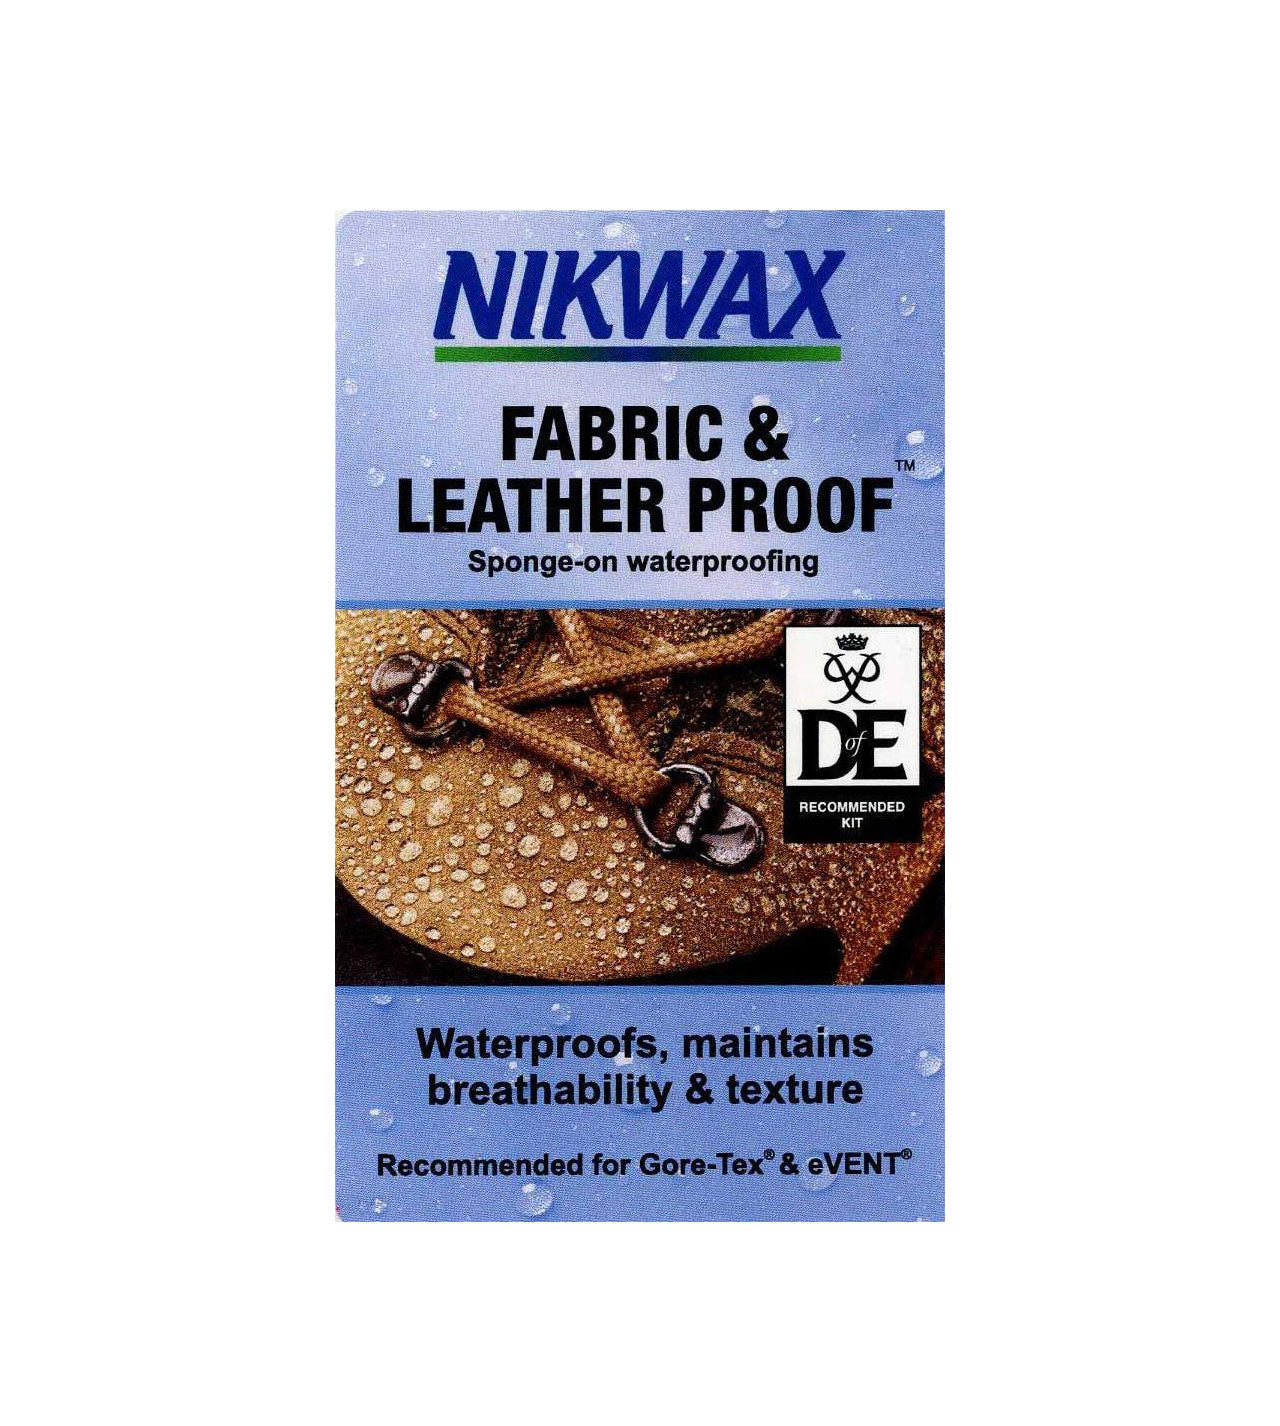 Nikwax Fabric & Leather Proof™ is easy and quick to apply; either spray or sponge on to wet boots.